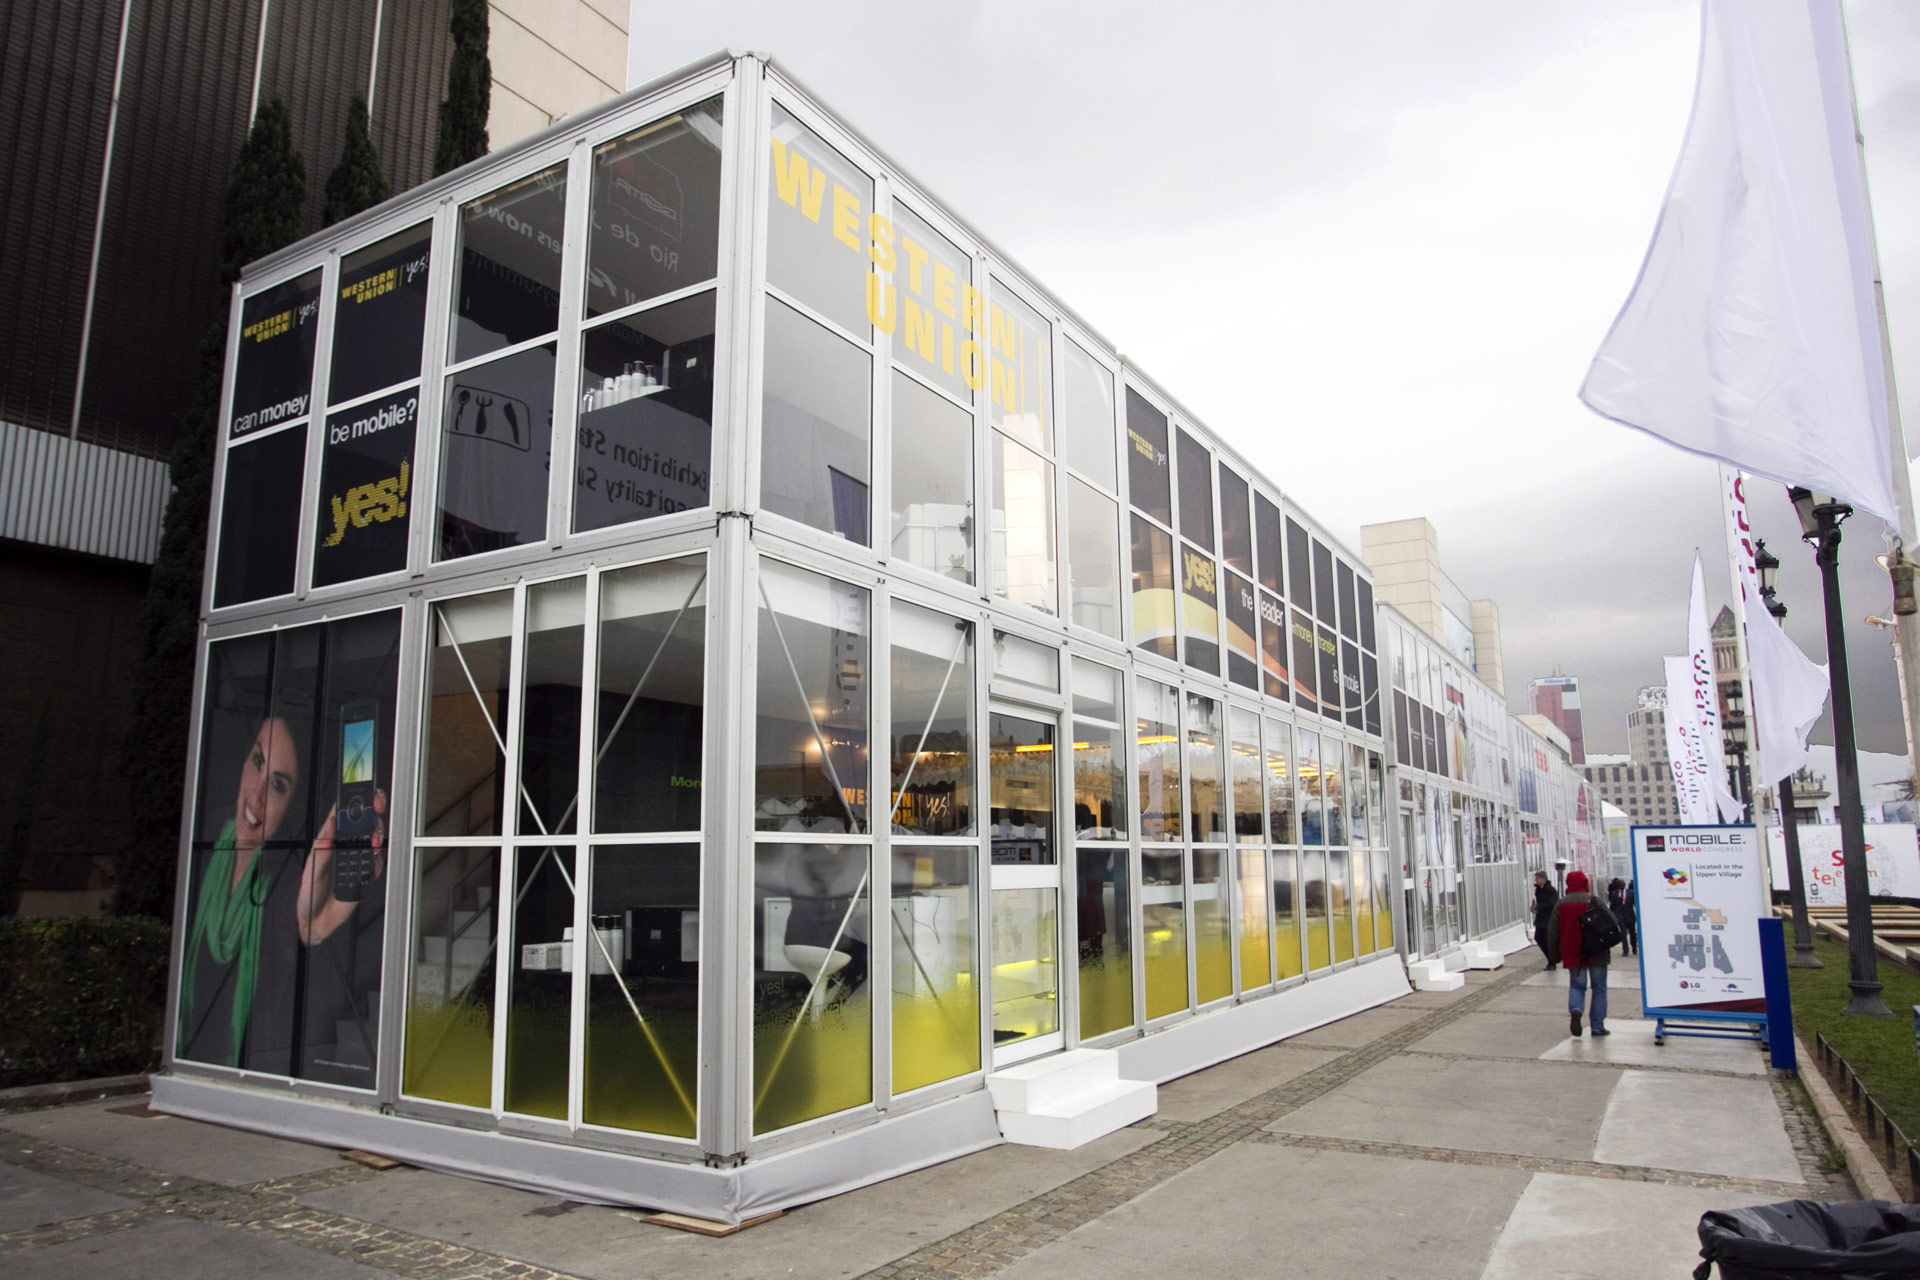 Western union mwc barcelona 2015 proexpo exhibition stand for Oficinas western union en barcelona